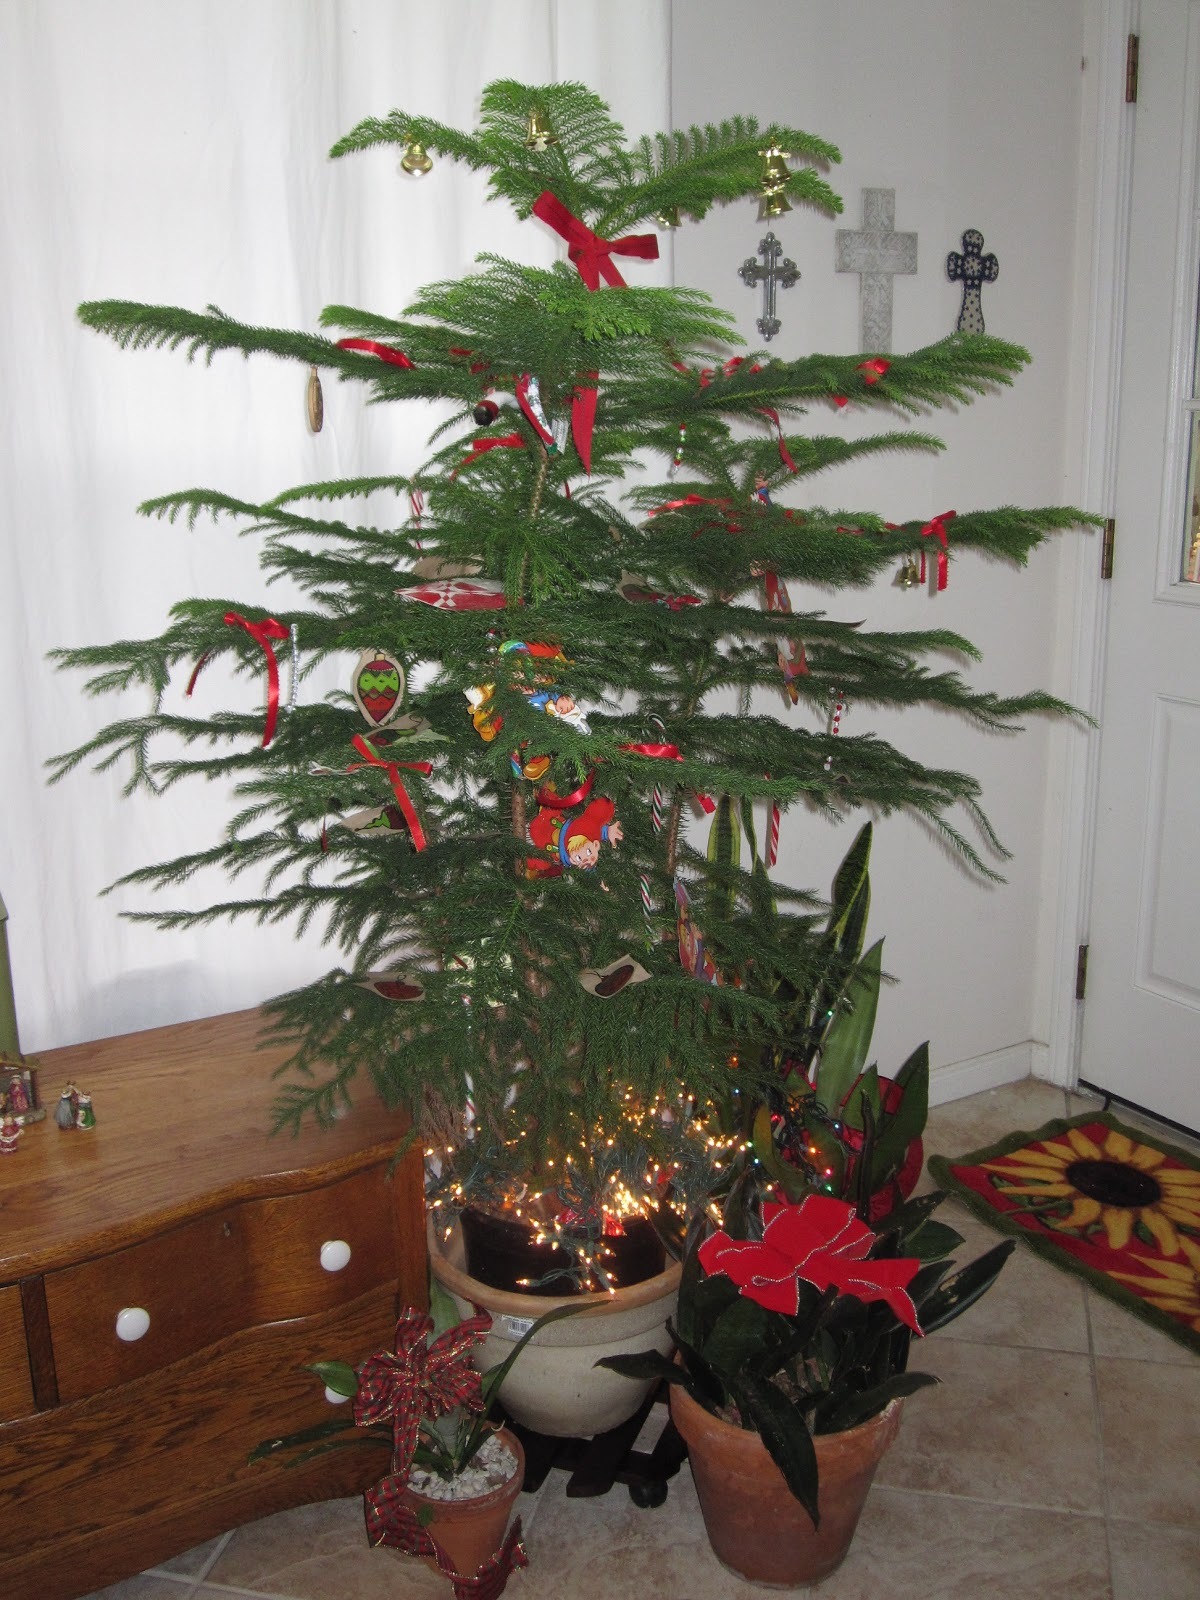 Tropical Texana: NORFOLK ISLAND PINE CHRISTMAS TREE ~ THIS ...